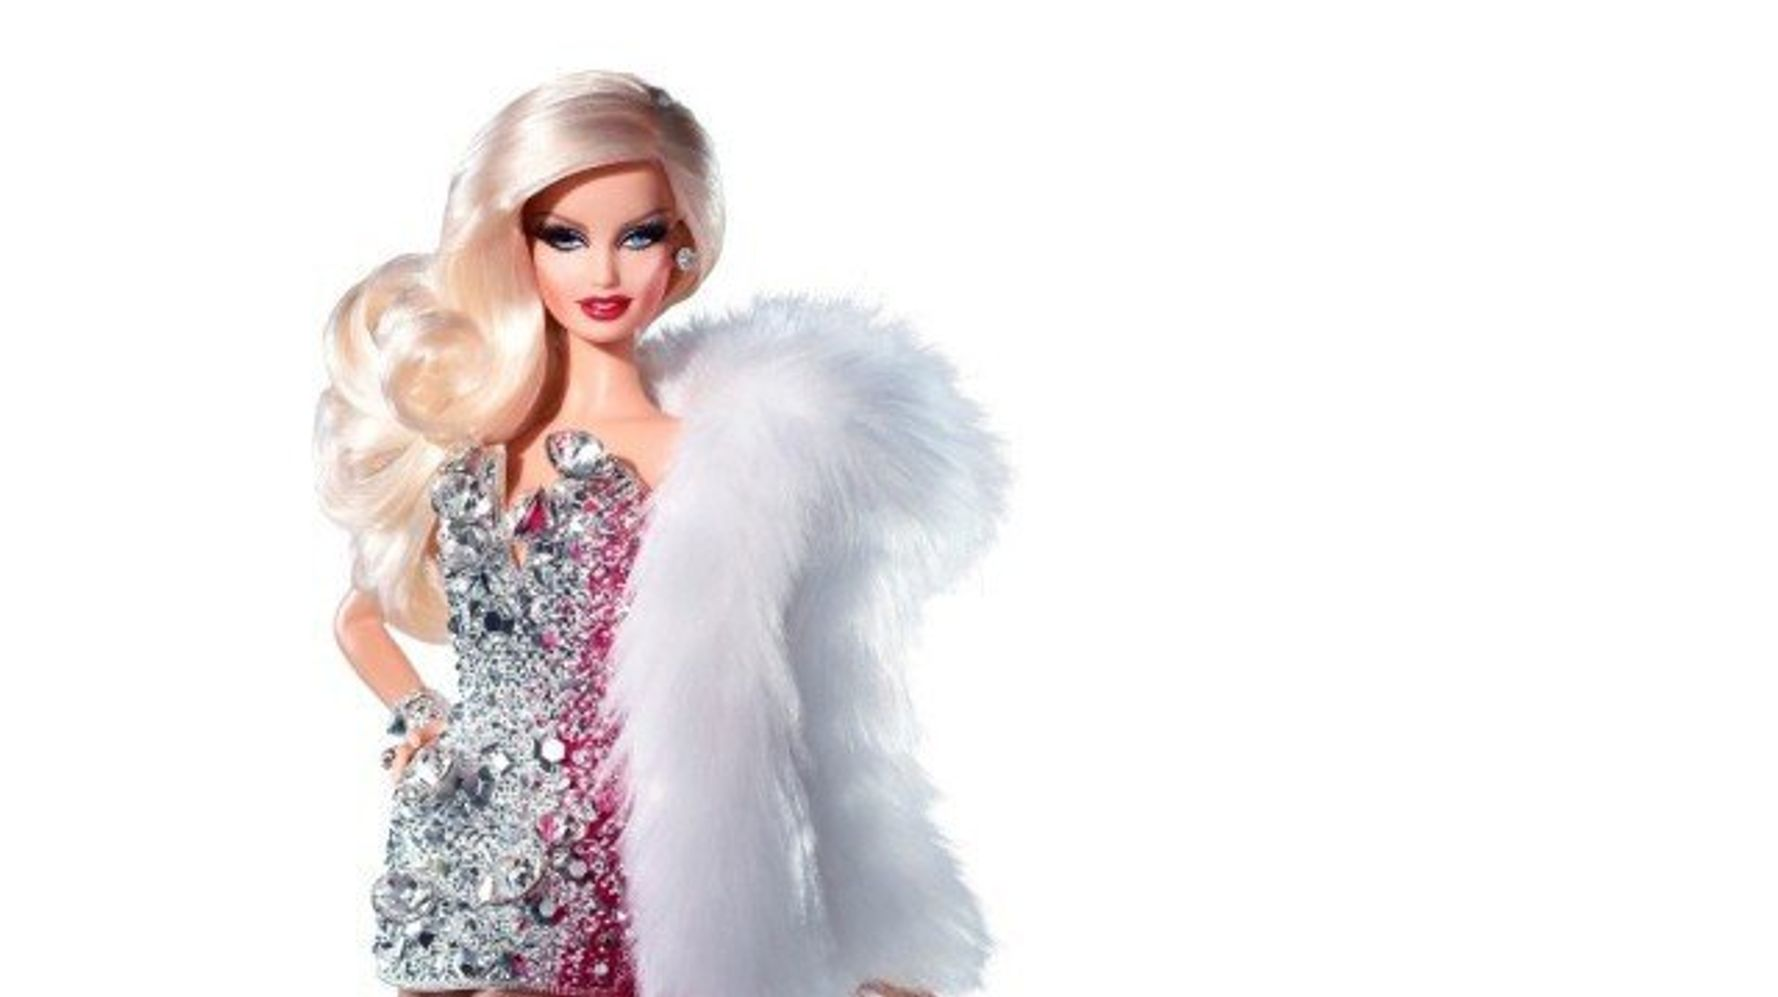 Drag Queen Barbie: New Doll Released This Christmas